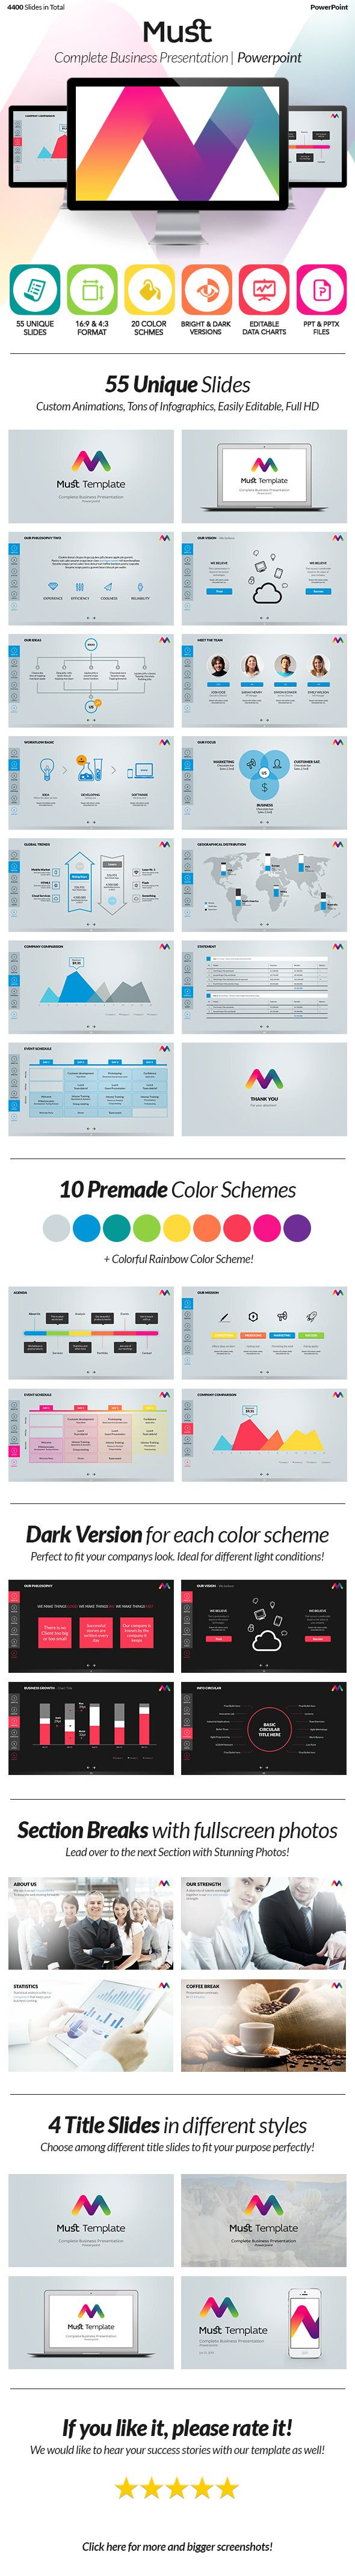 Must PowerPoint - Complete Business Presentation  #template #point #portfolio • Click here to download ! http://graphicriver.net/item/must-powerpoint-complete-business-presentation/5736943?s_rank=1404&ref=pxcr